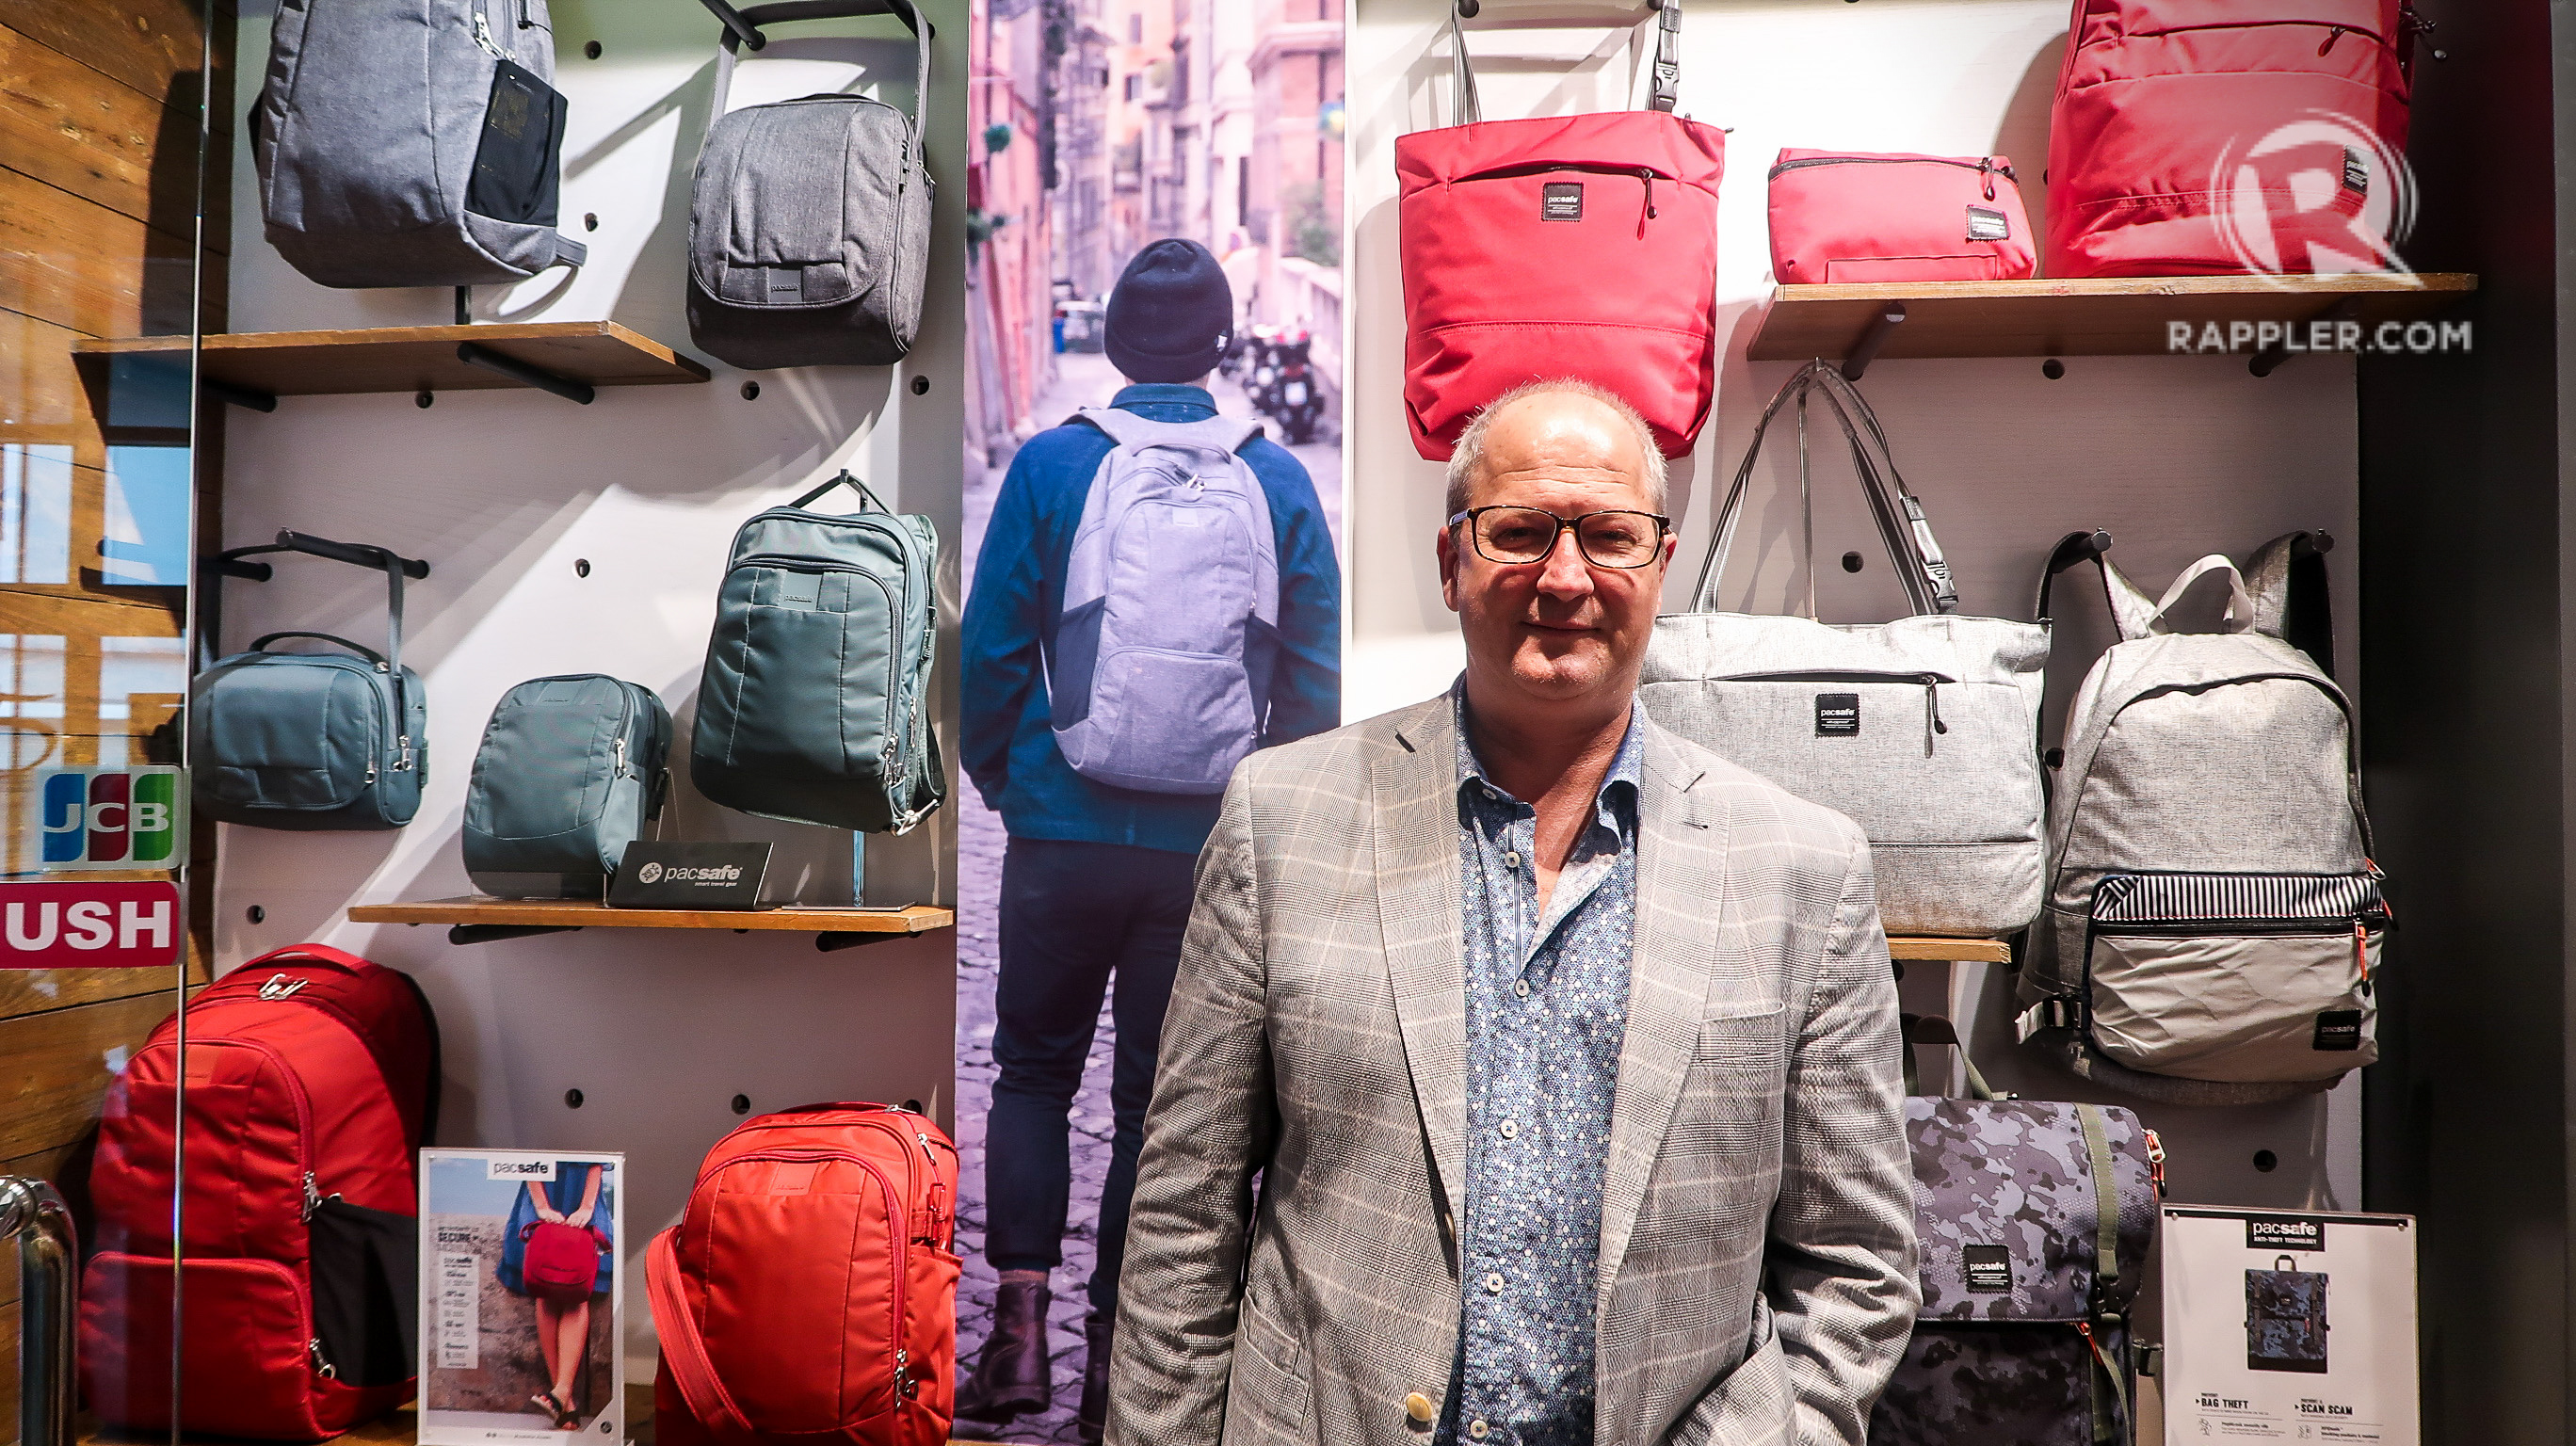 MAGNUS MCGLASHAN. The Pacsafe co-founder poses in front of a Pacsafe store display in the Philippines. All photos by Precious del Valle/Rappler unless otherwise stated